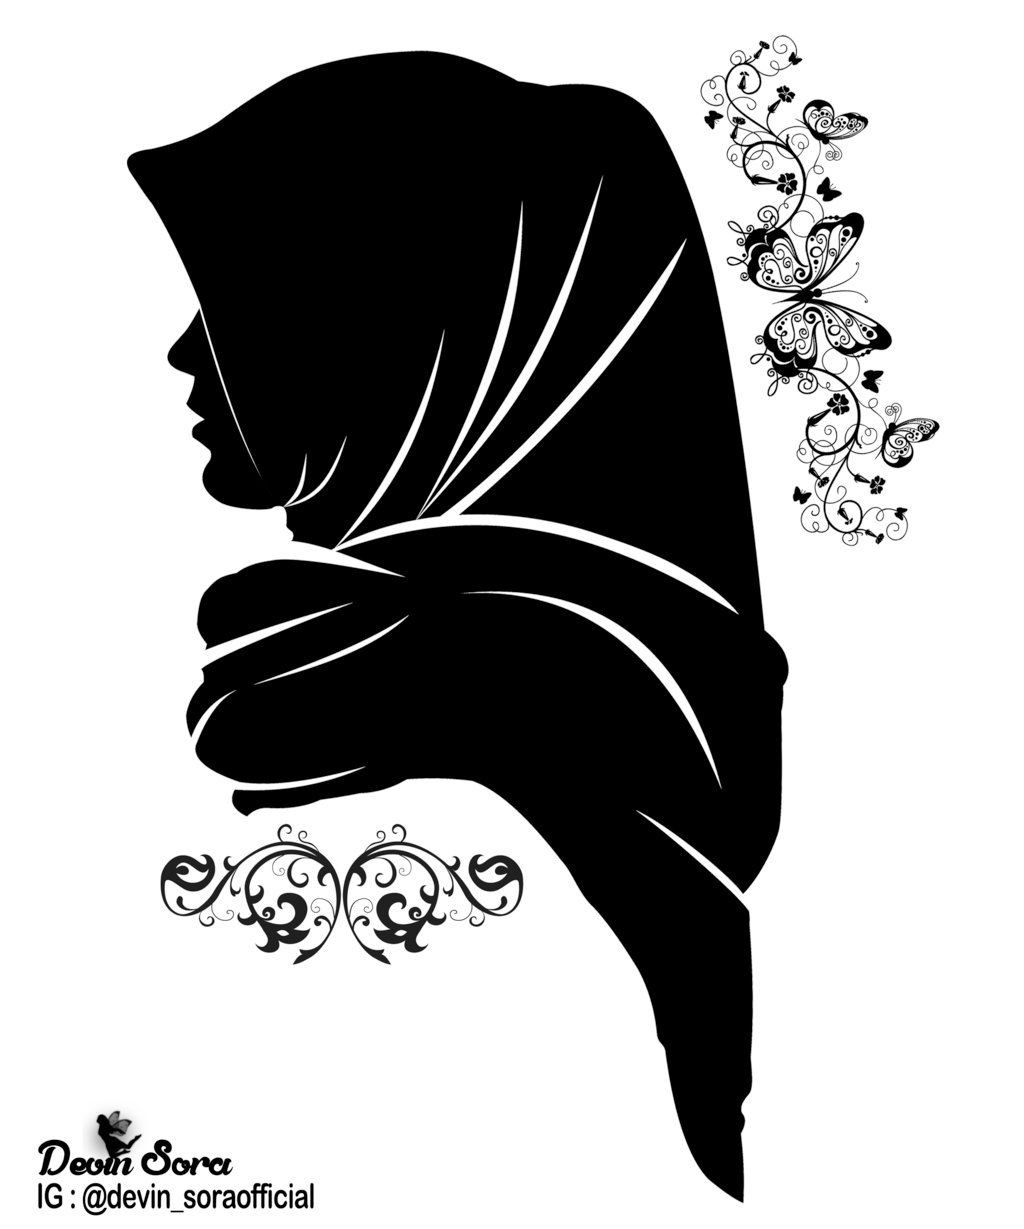 Hijab Silhouette Png : hijab, silhouette, Silhouette, Hijab, Drawing,, Woman, Islamic, Paintings